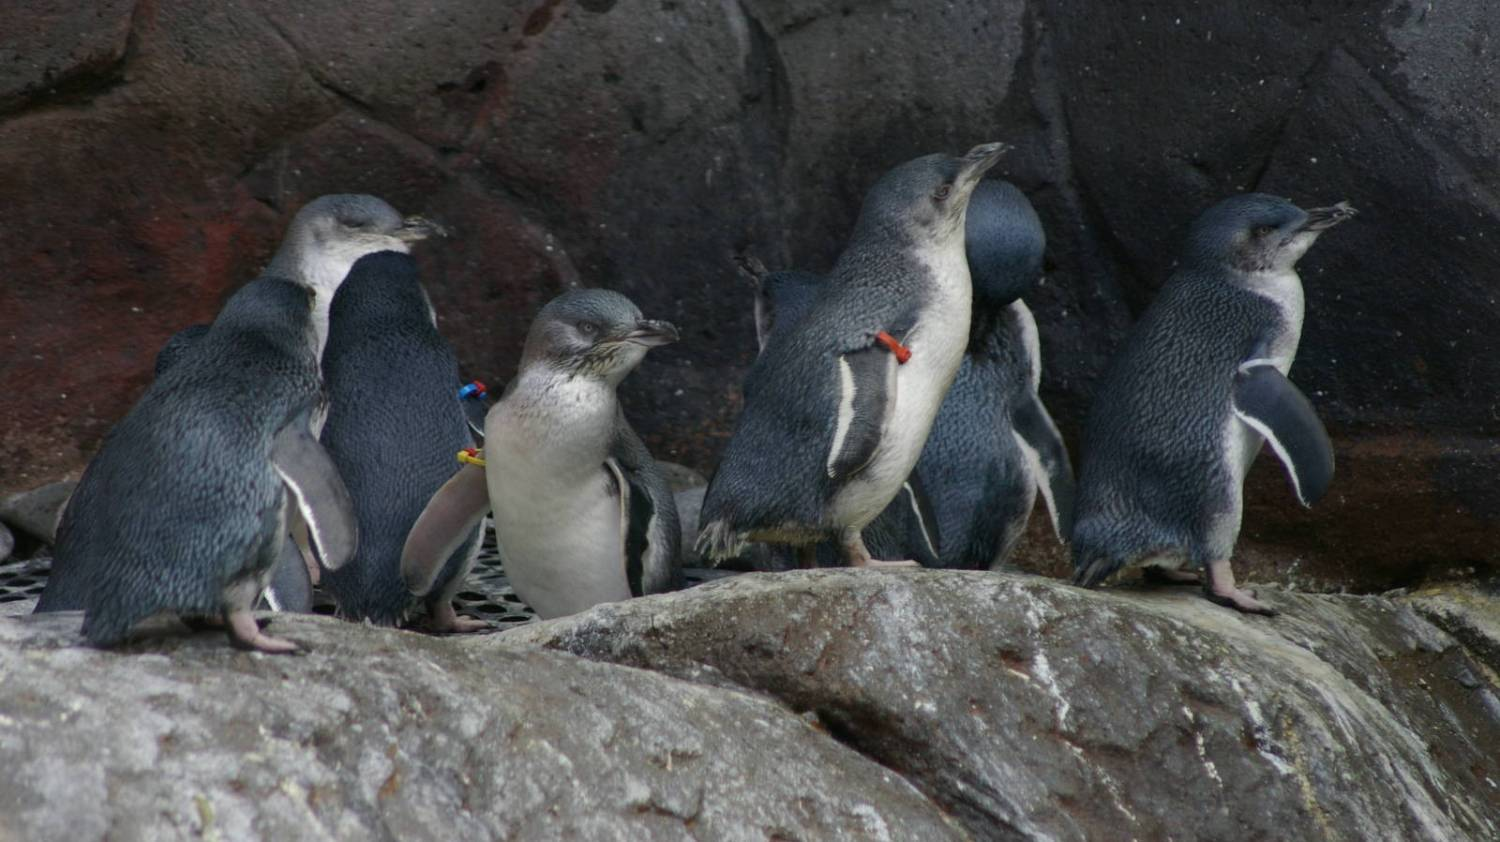 International Antarctic Centre - Things To Do In Christchurch